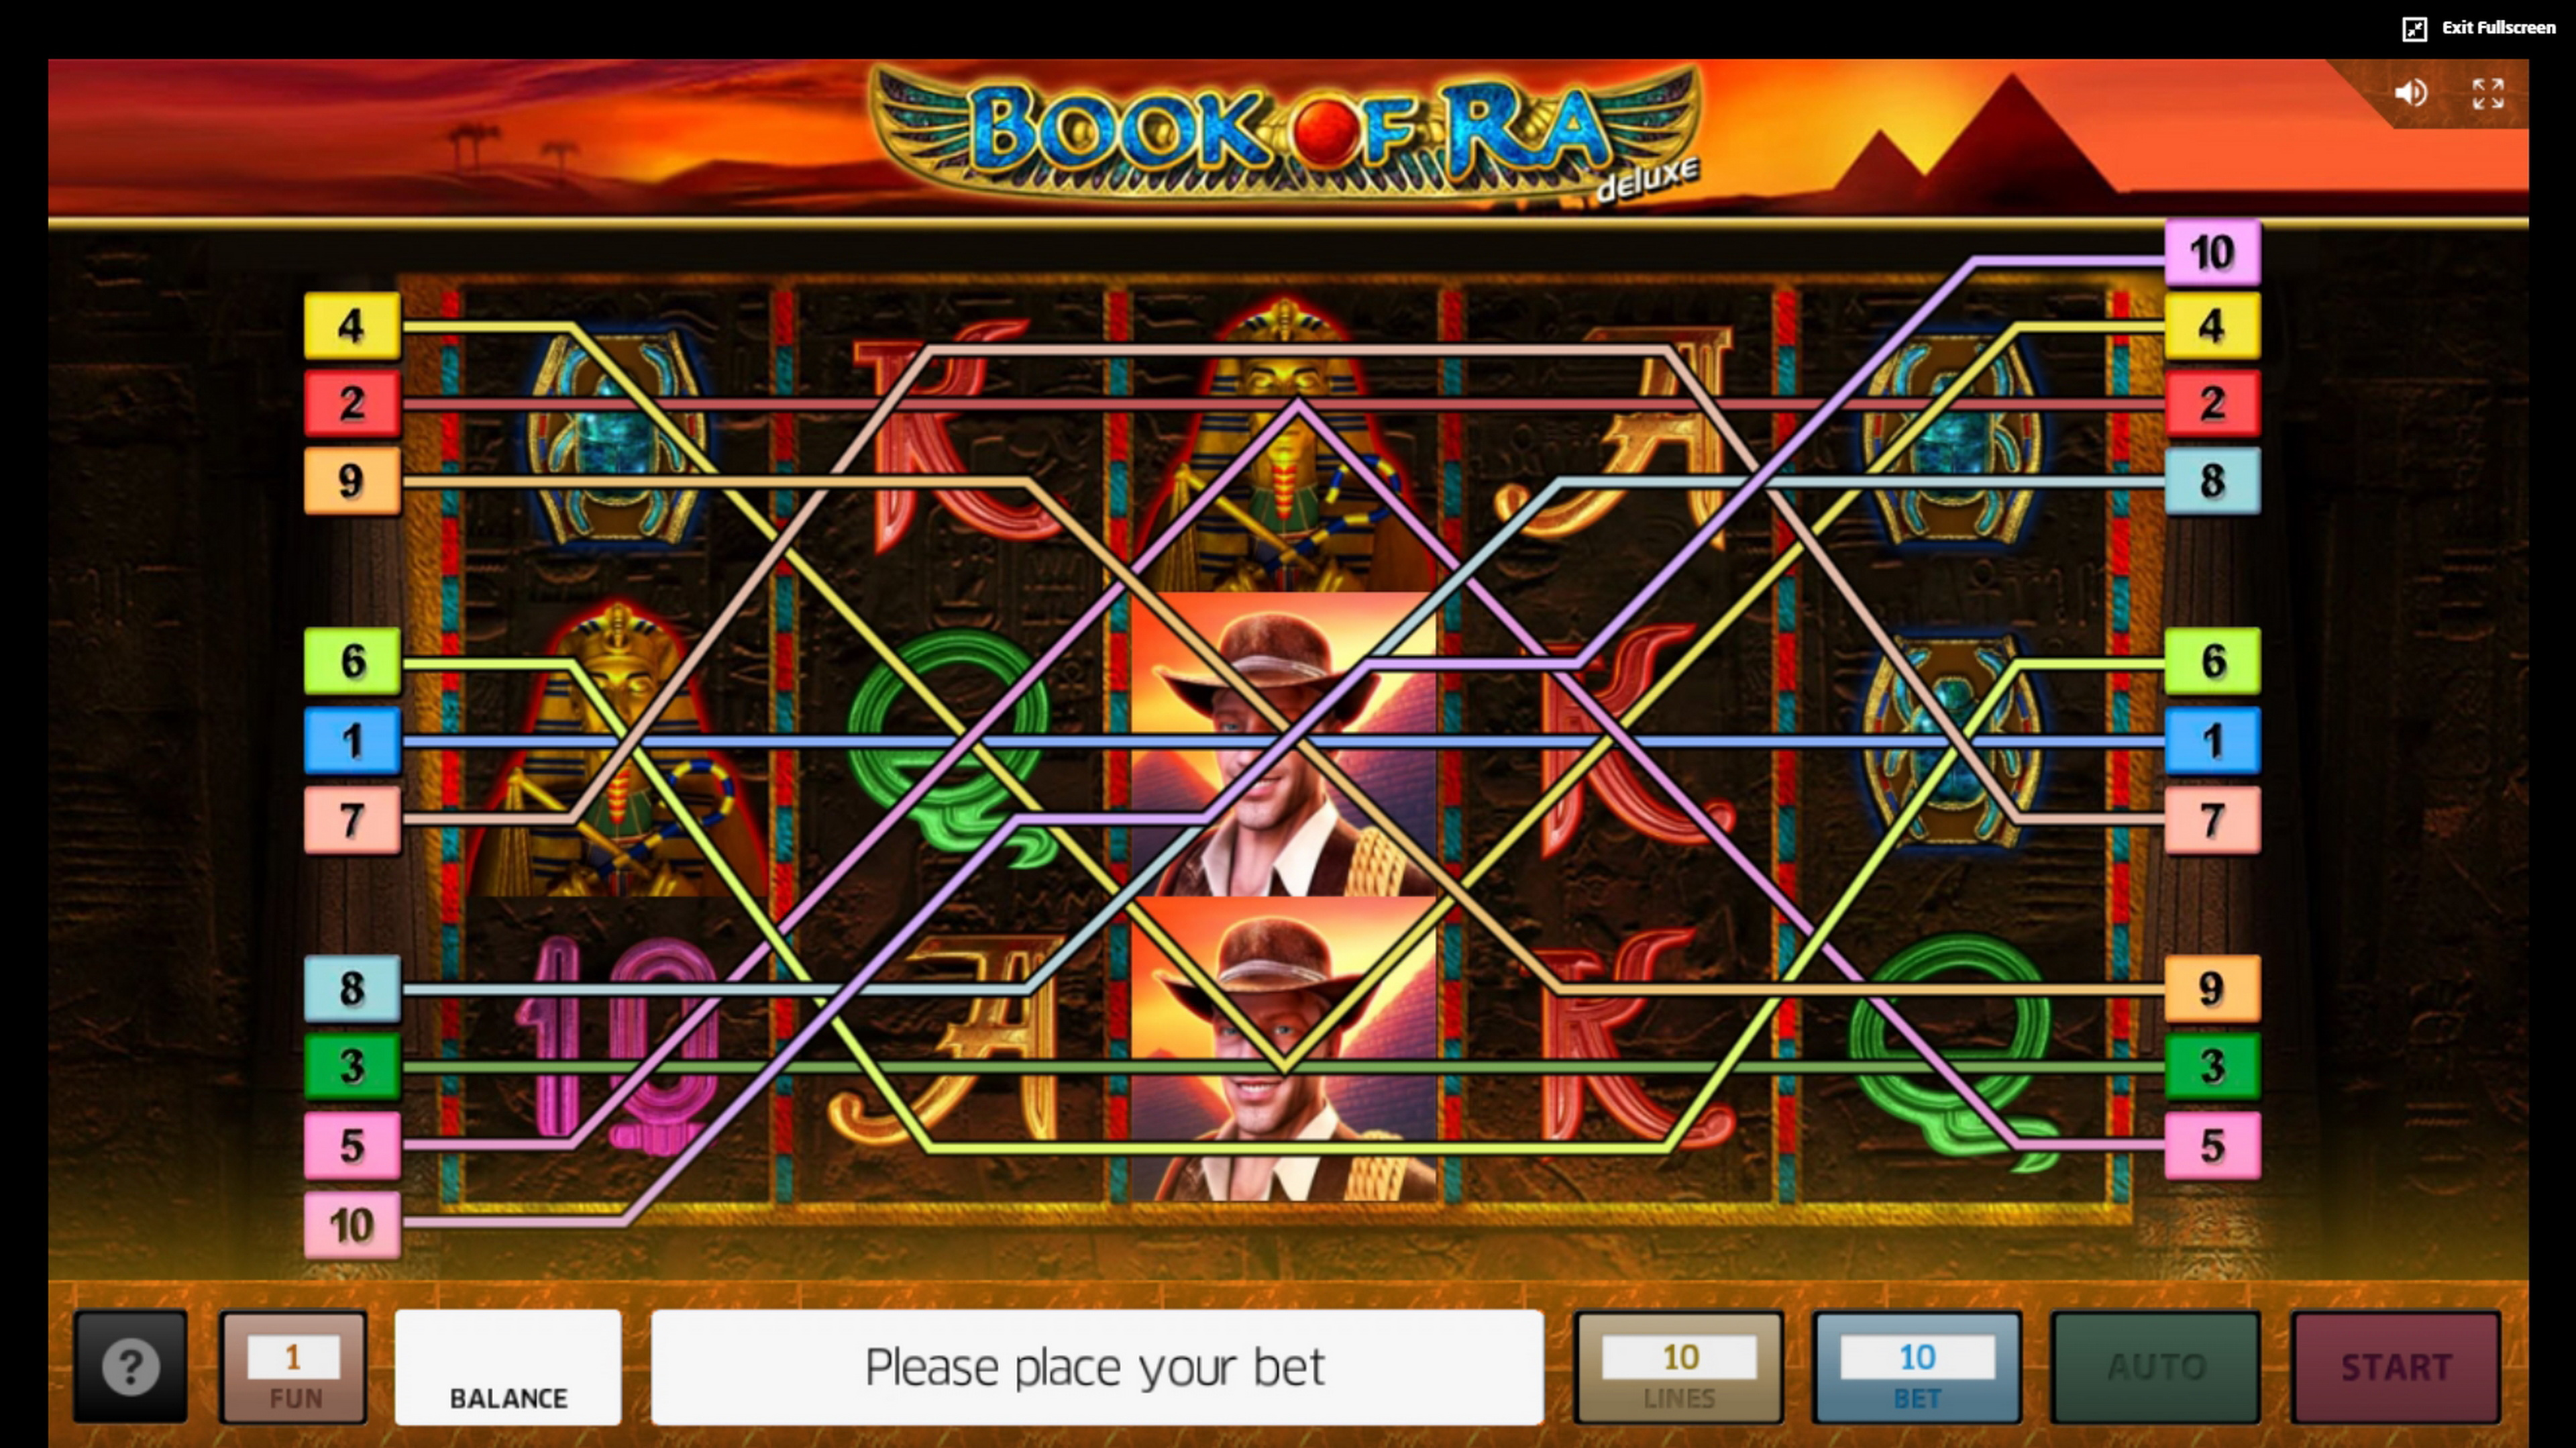 Play Book of Ra deluxe Free Casino Slot Game by Greentube